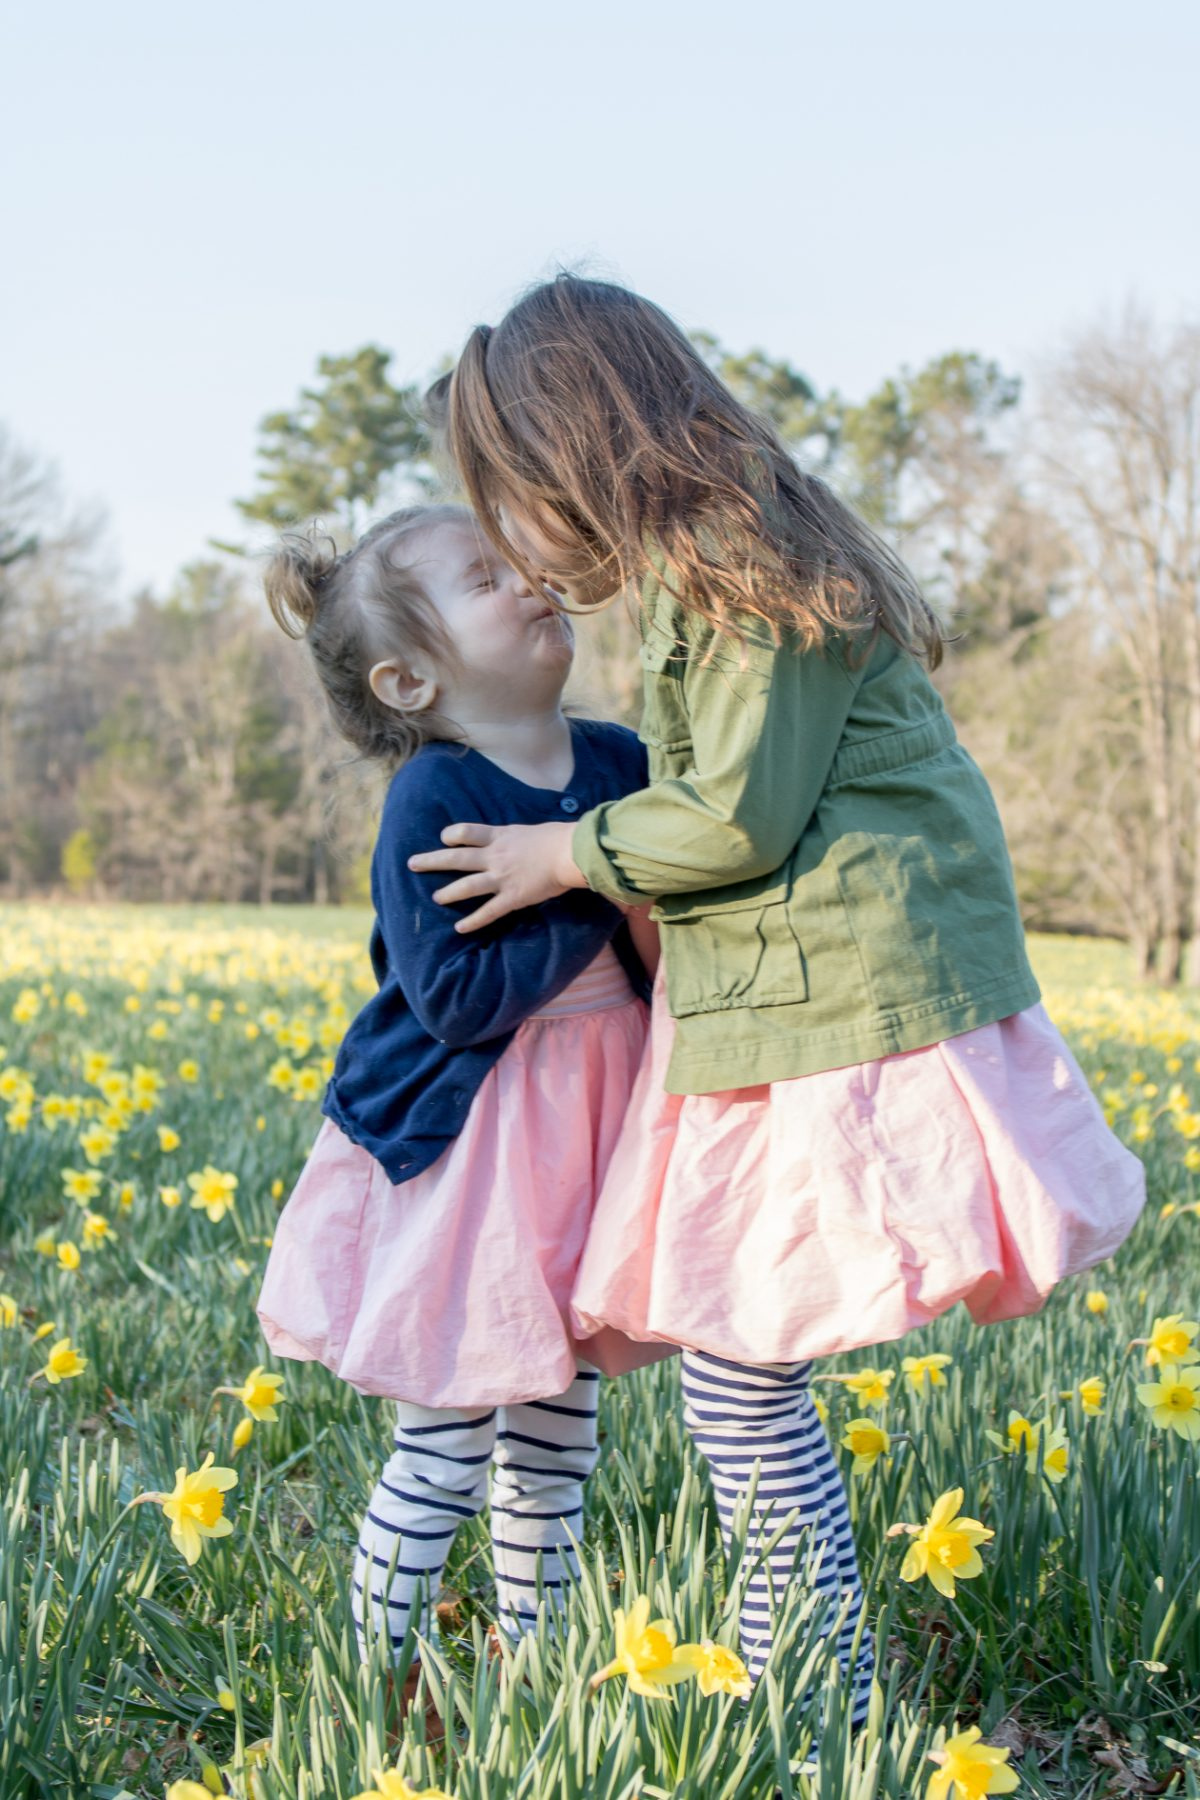 Sisters in a daffodil field, big sister wearing a green coat and pink dress kissing little sister on the nose